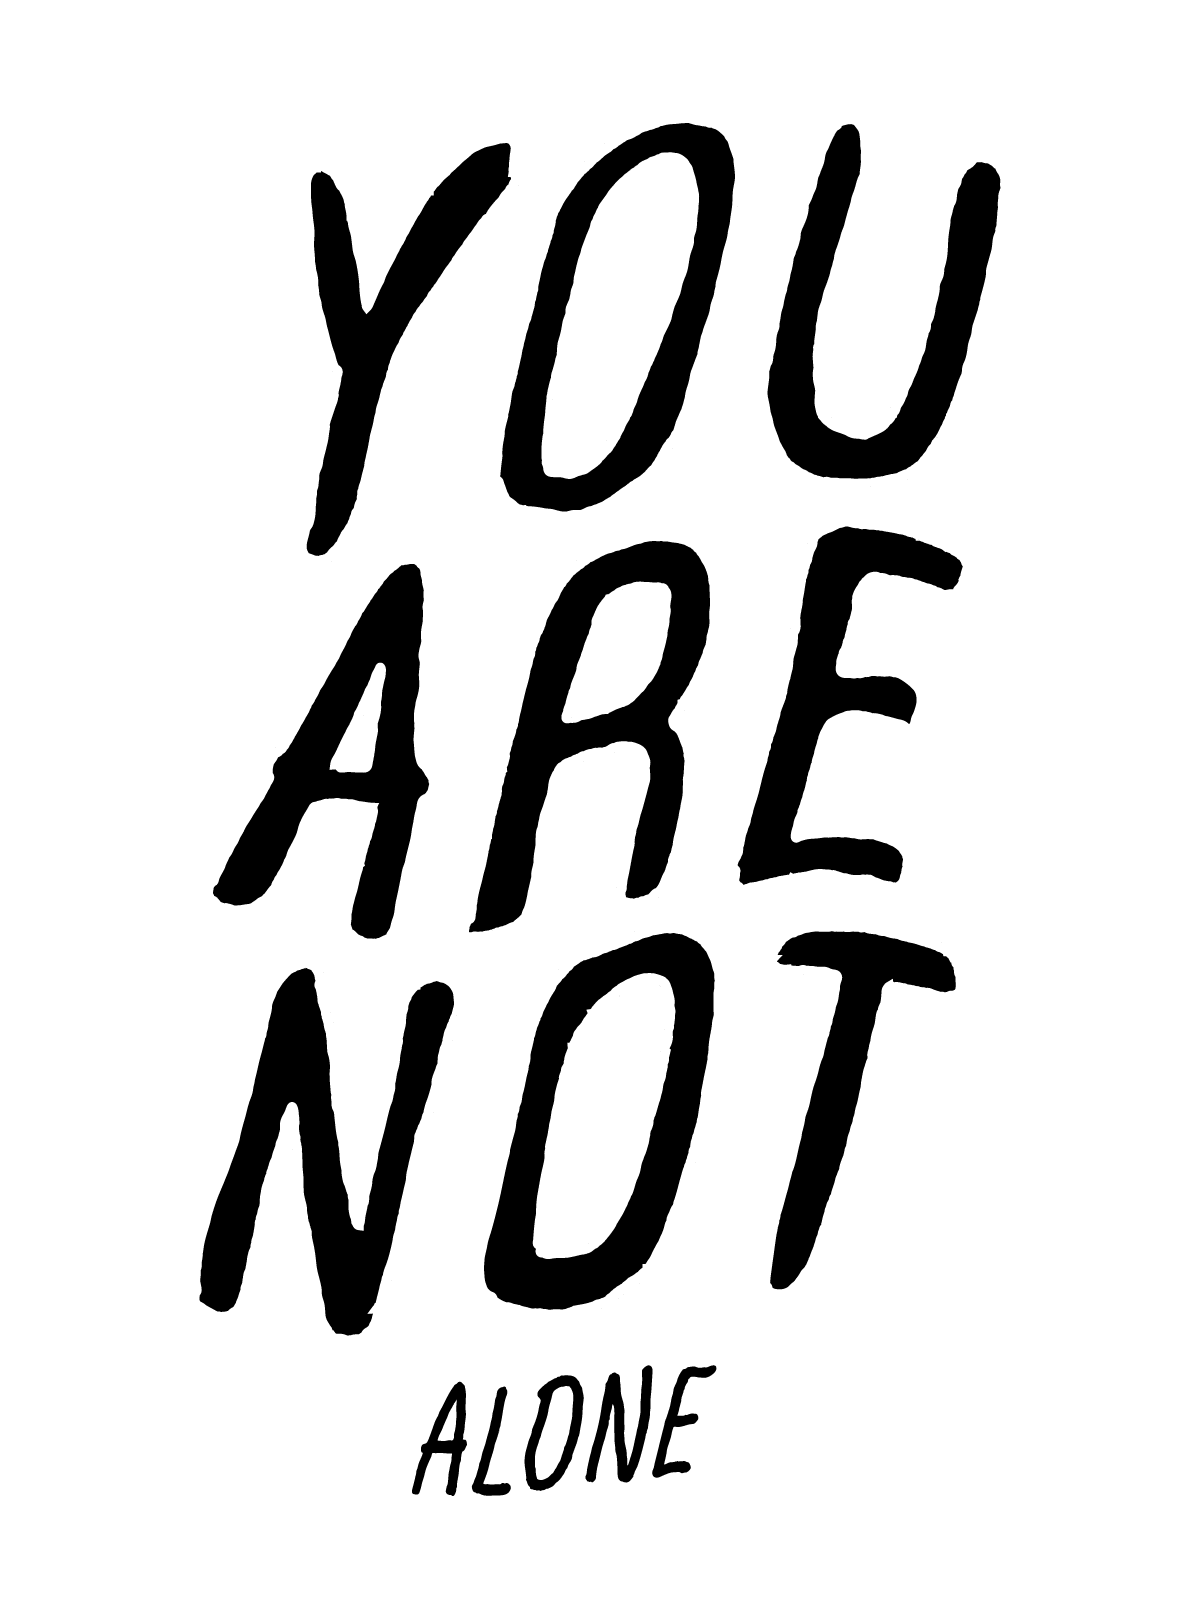 """YOU ARE NOT"" large handwritten type set in an arched wave above a smaller word ""ALONE."""